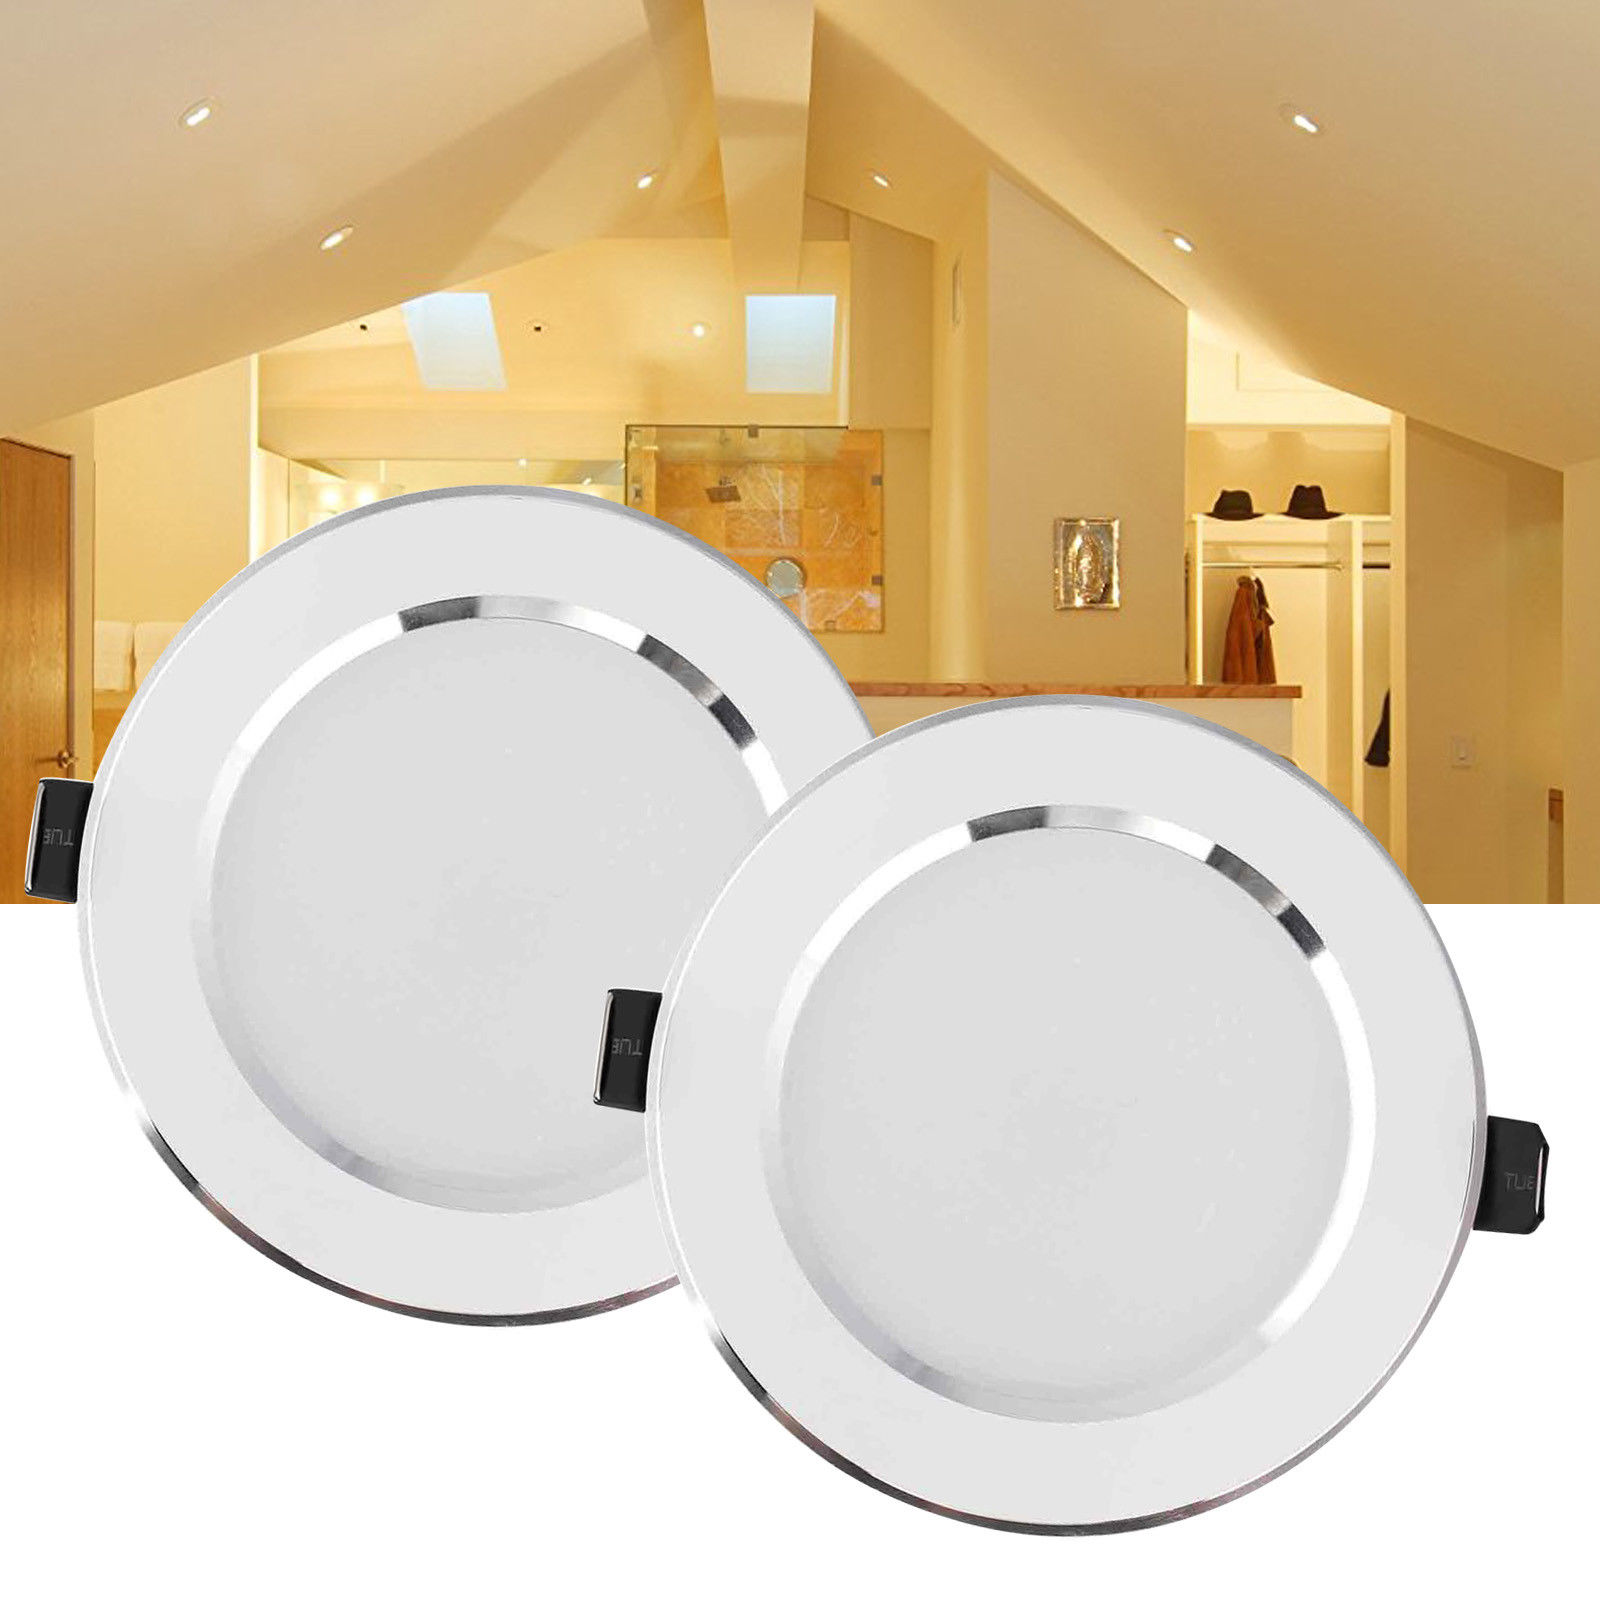 Image of: Dimmable Led Recessed Ceiling Light Panel Downlight 3w 5w 7w 9w 12w 15w 18w 21w Ac 110v 220v For Home Office Living Room White Led Downlights Aliexpress